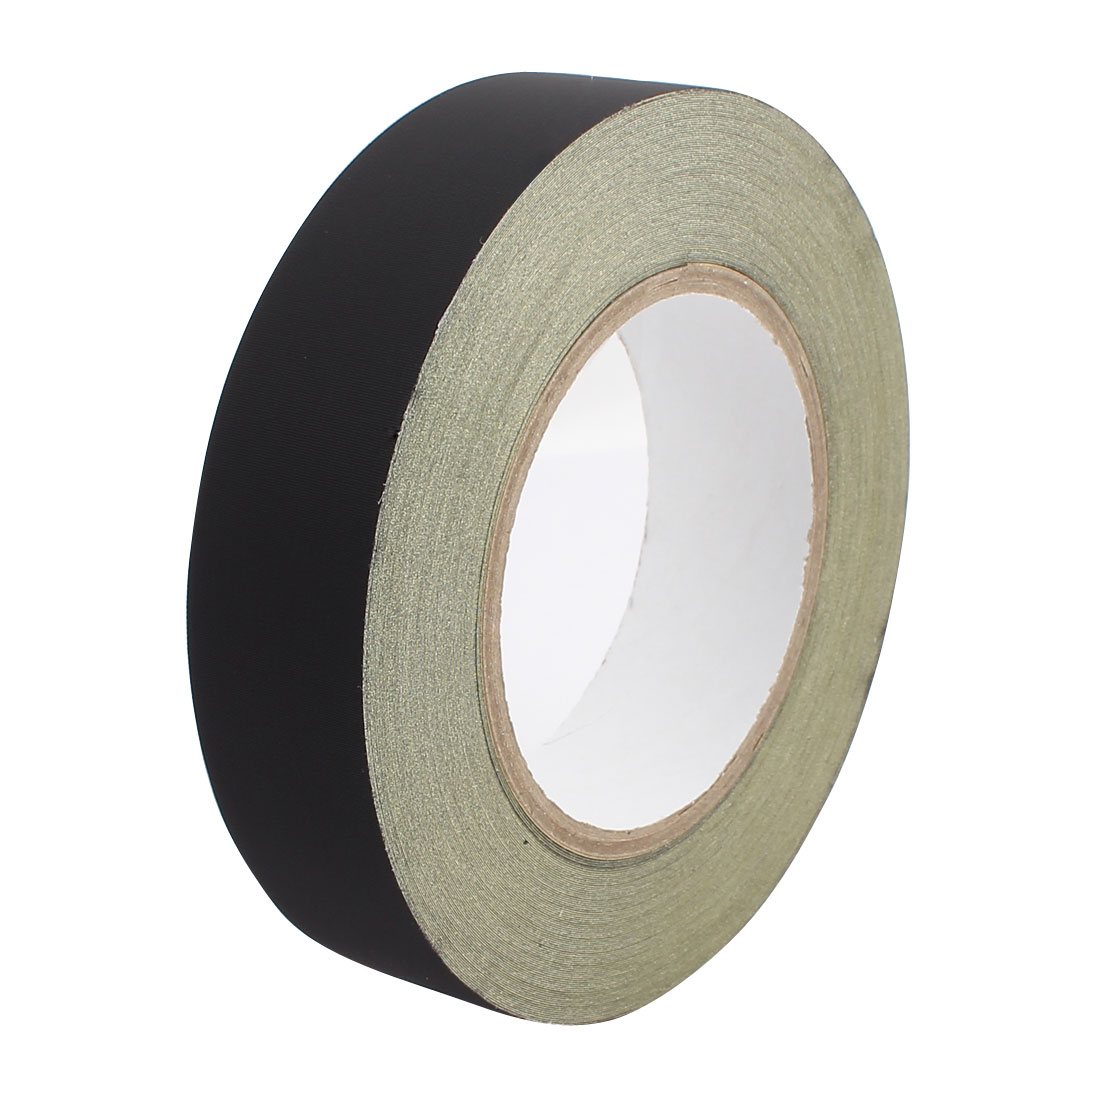 30mm Width Black Insulating Acetate Cloth Adhesive Tape For Laptop Transformer Coils Repair